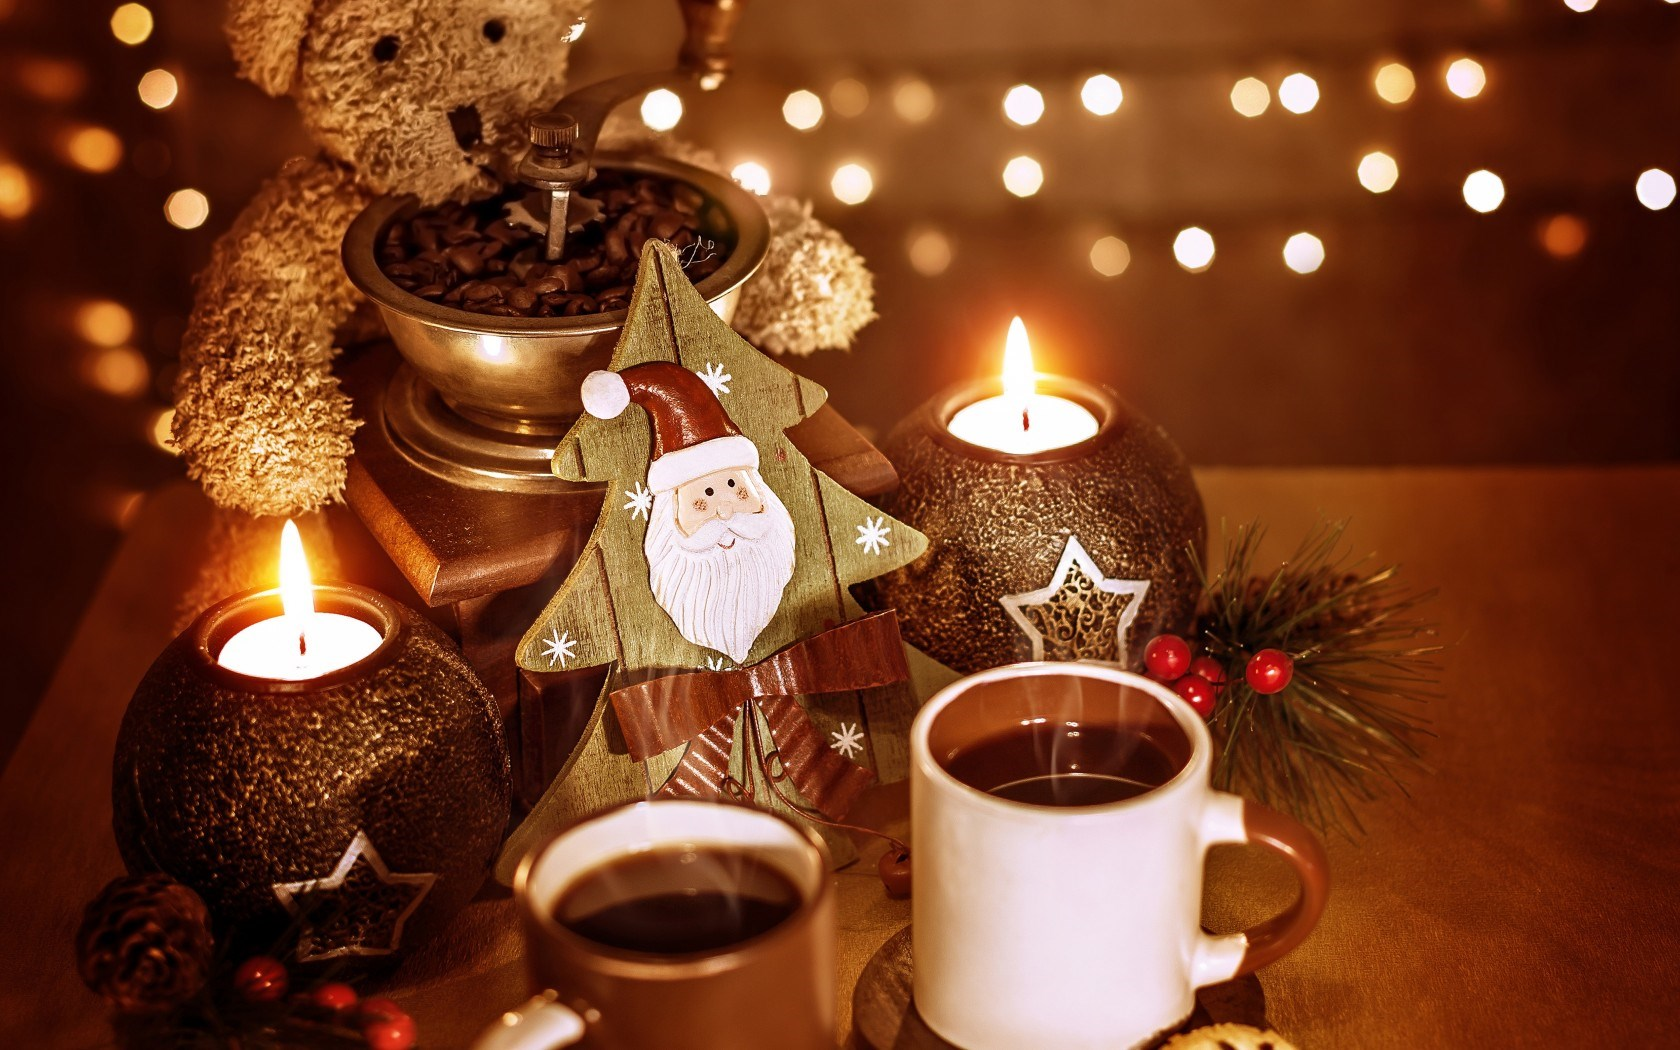 new-year-christmas-holiday-balls-ornaments-coffee-teddy-bear-background-1680x1050